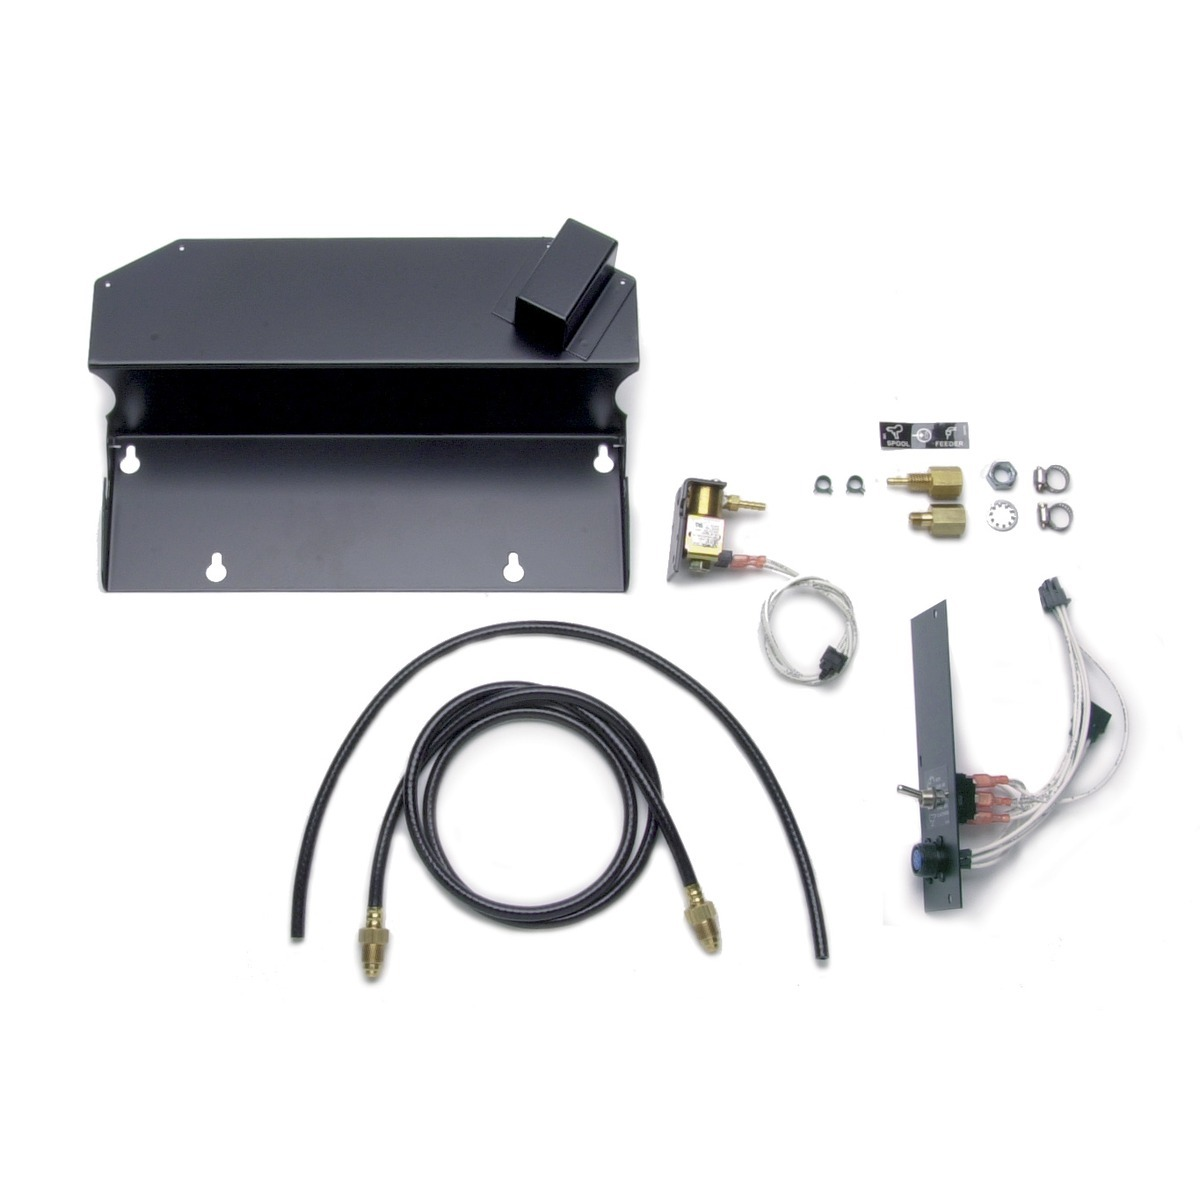 Airgas Lincoln Wiring Harness Electric Adapter Kit For Use With Magnum 250lx And Power Mig Spool